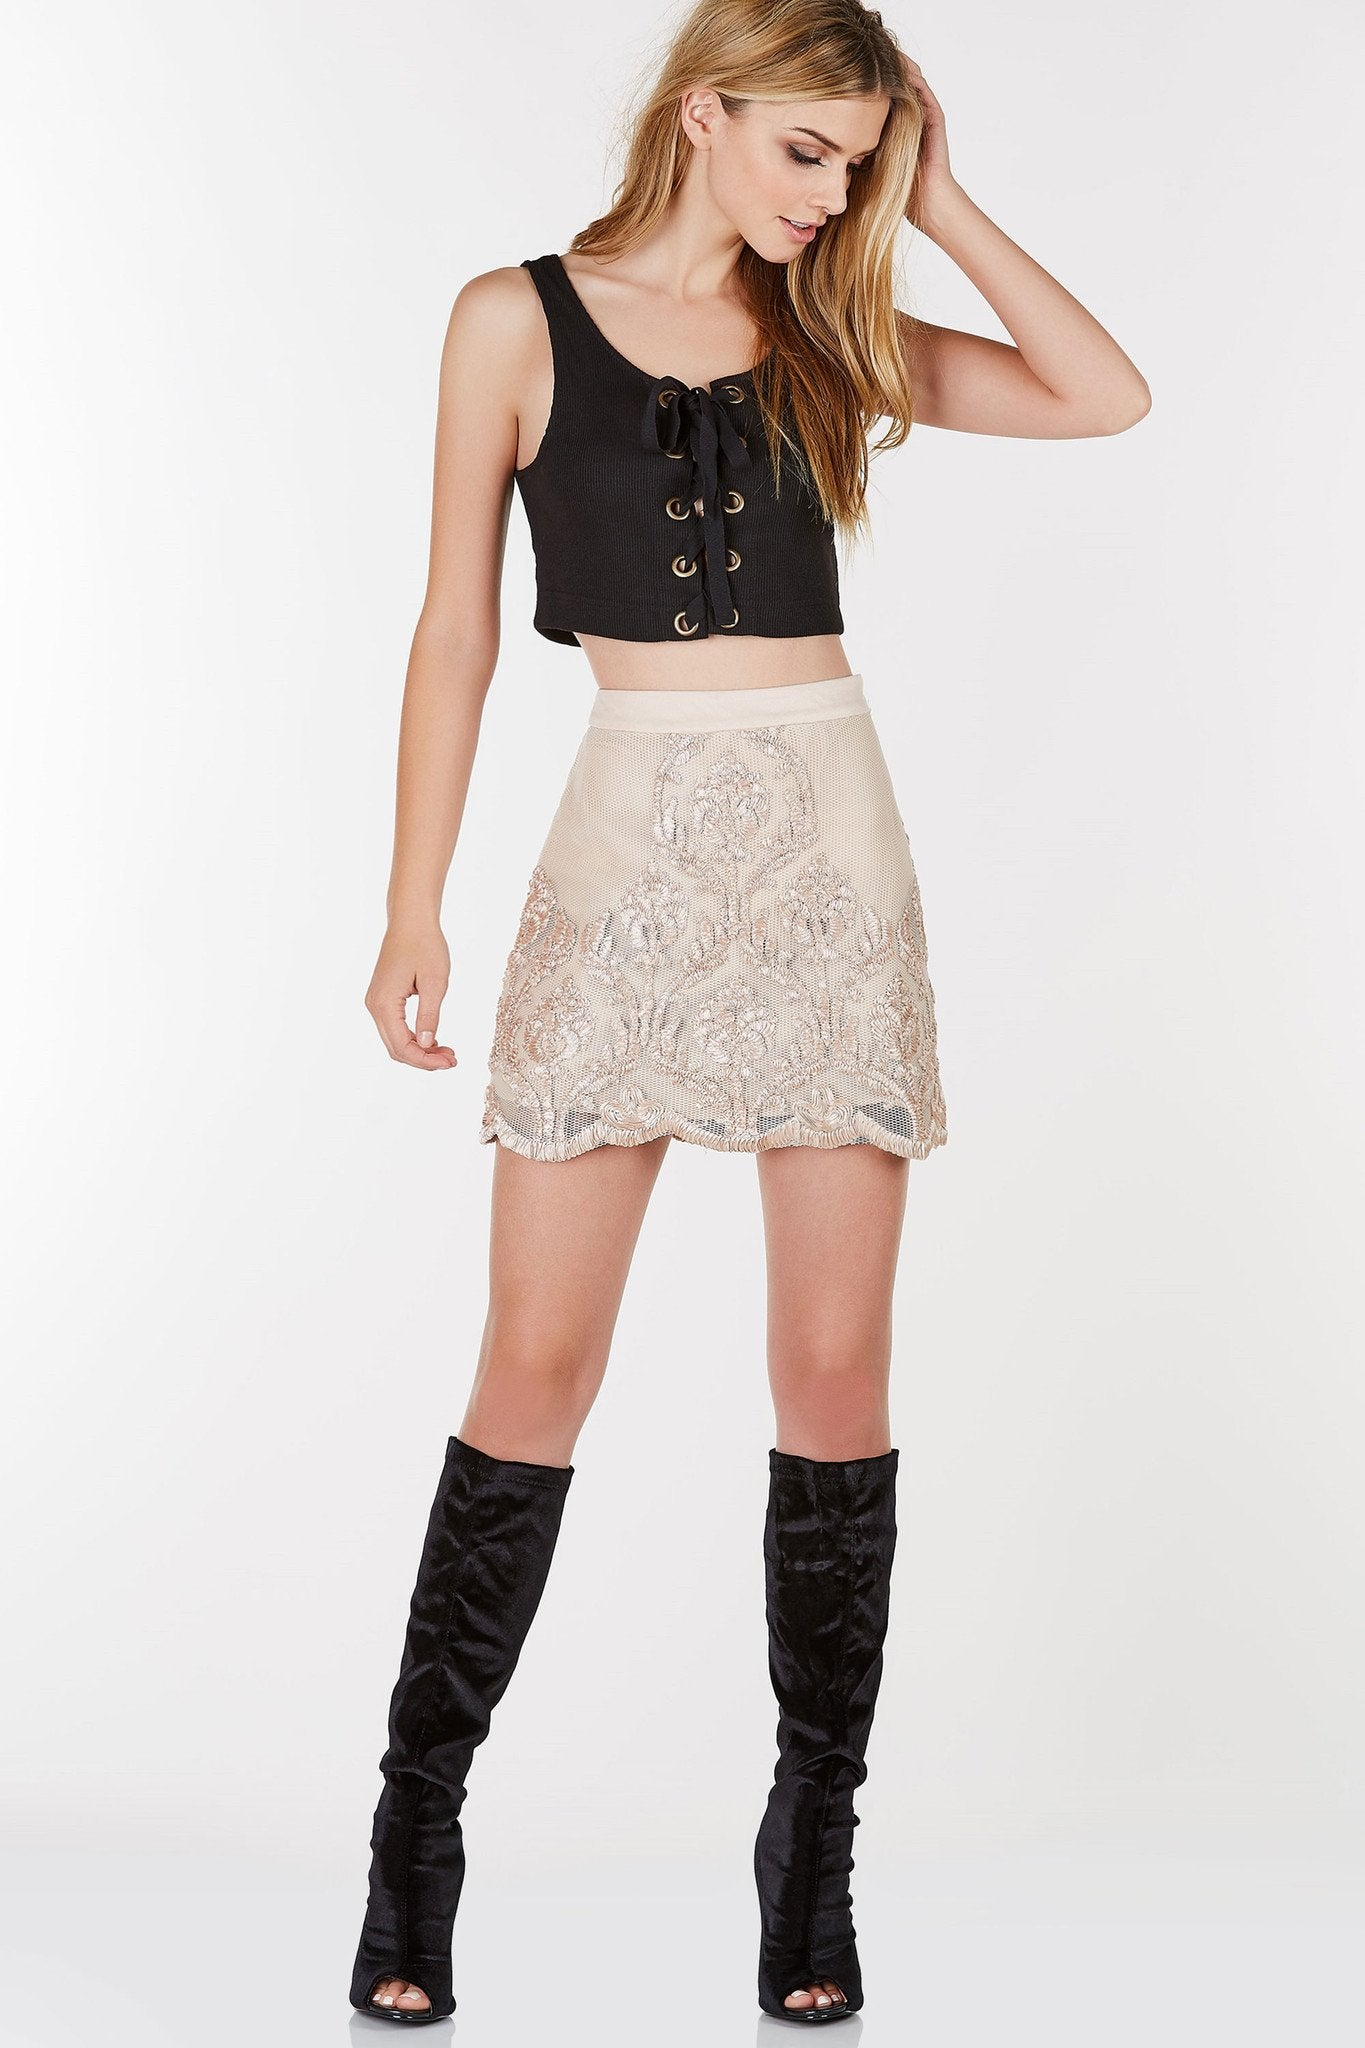 Ribbed sleeveless crop top with lace up design. Eyelet detailing with straight hem alla round.